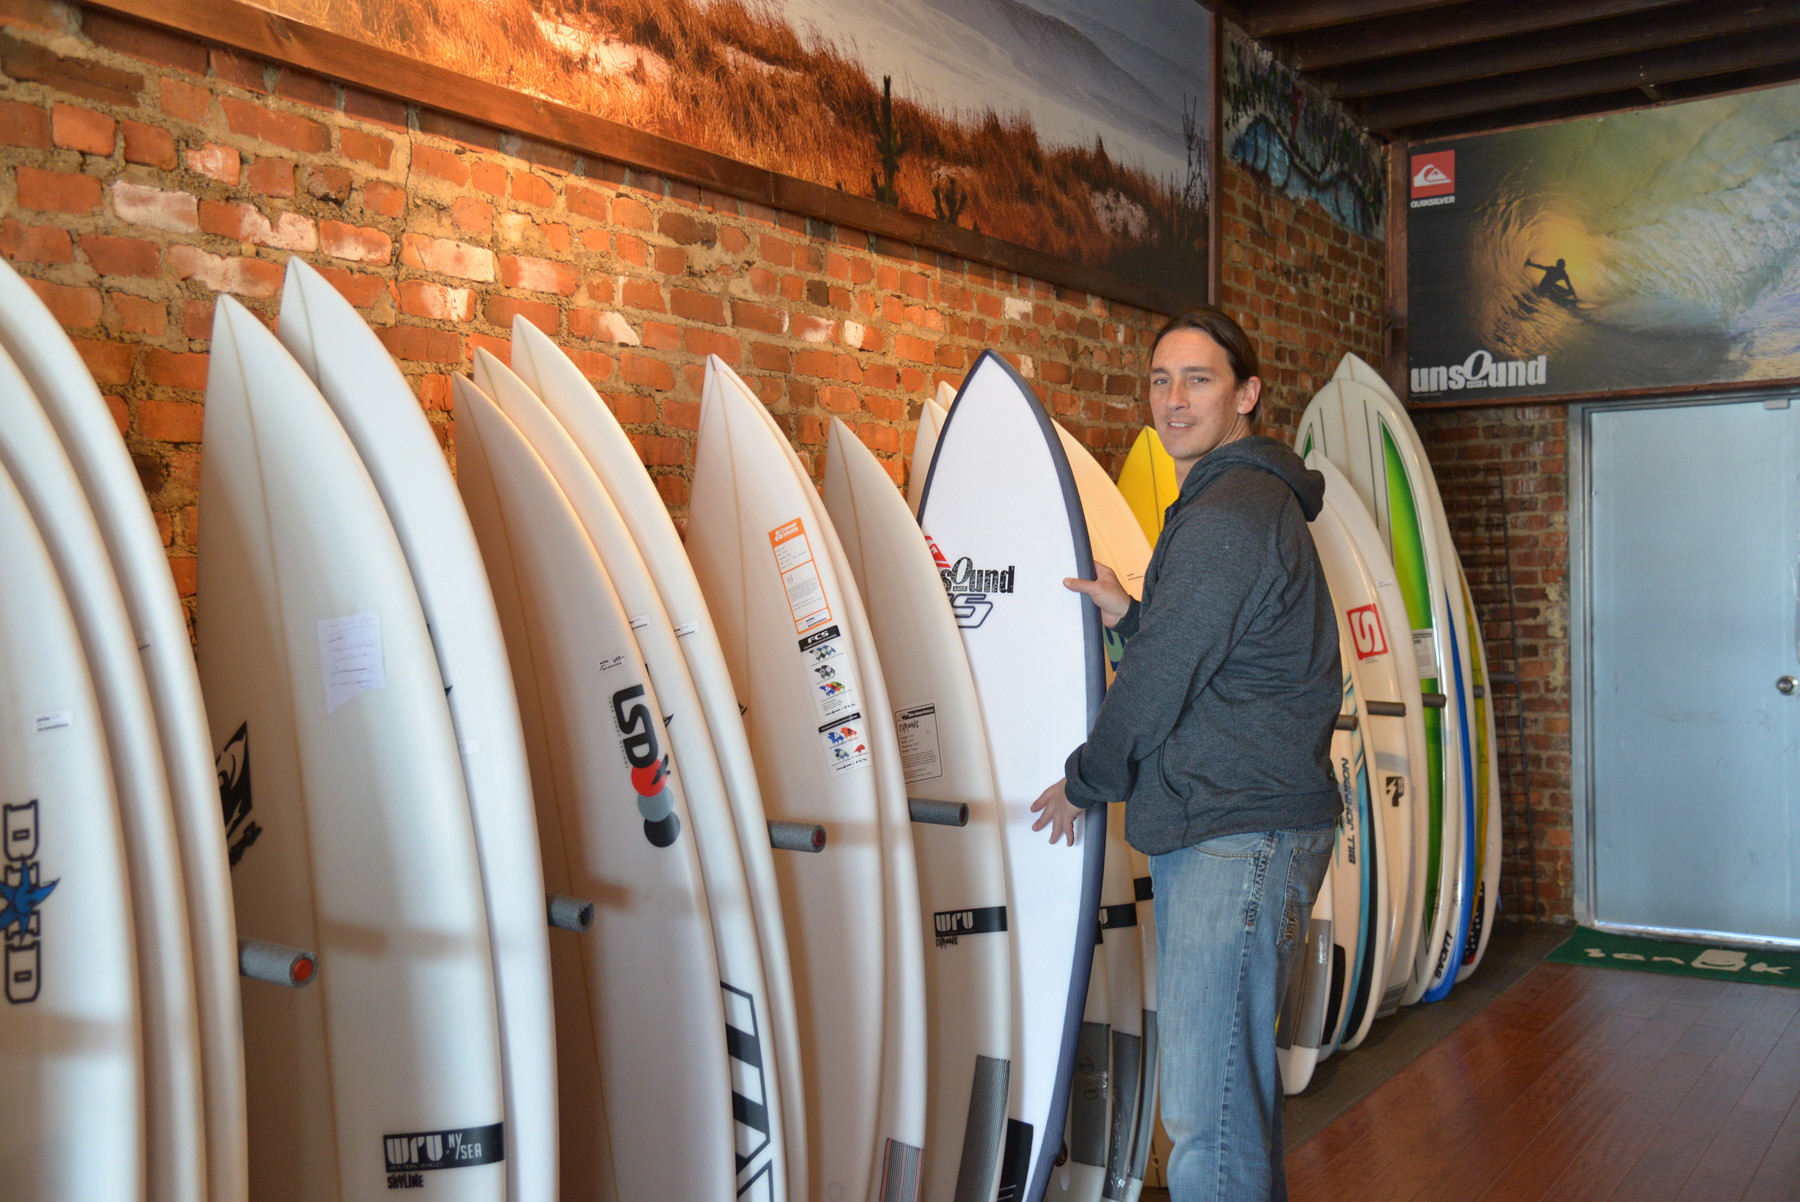 Dave Juan inside the new store, which is stocked with new surfboards, gear and other inventory.